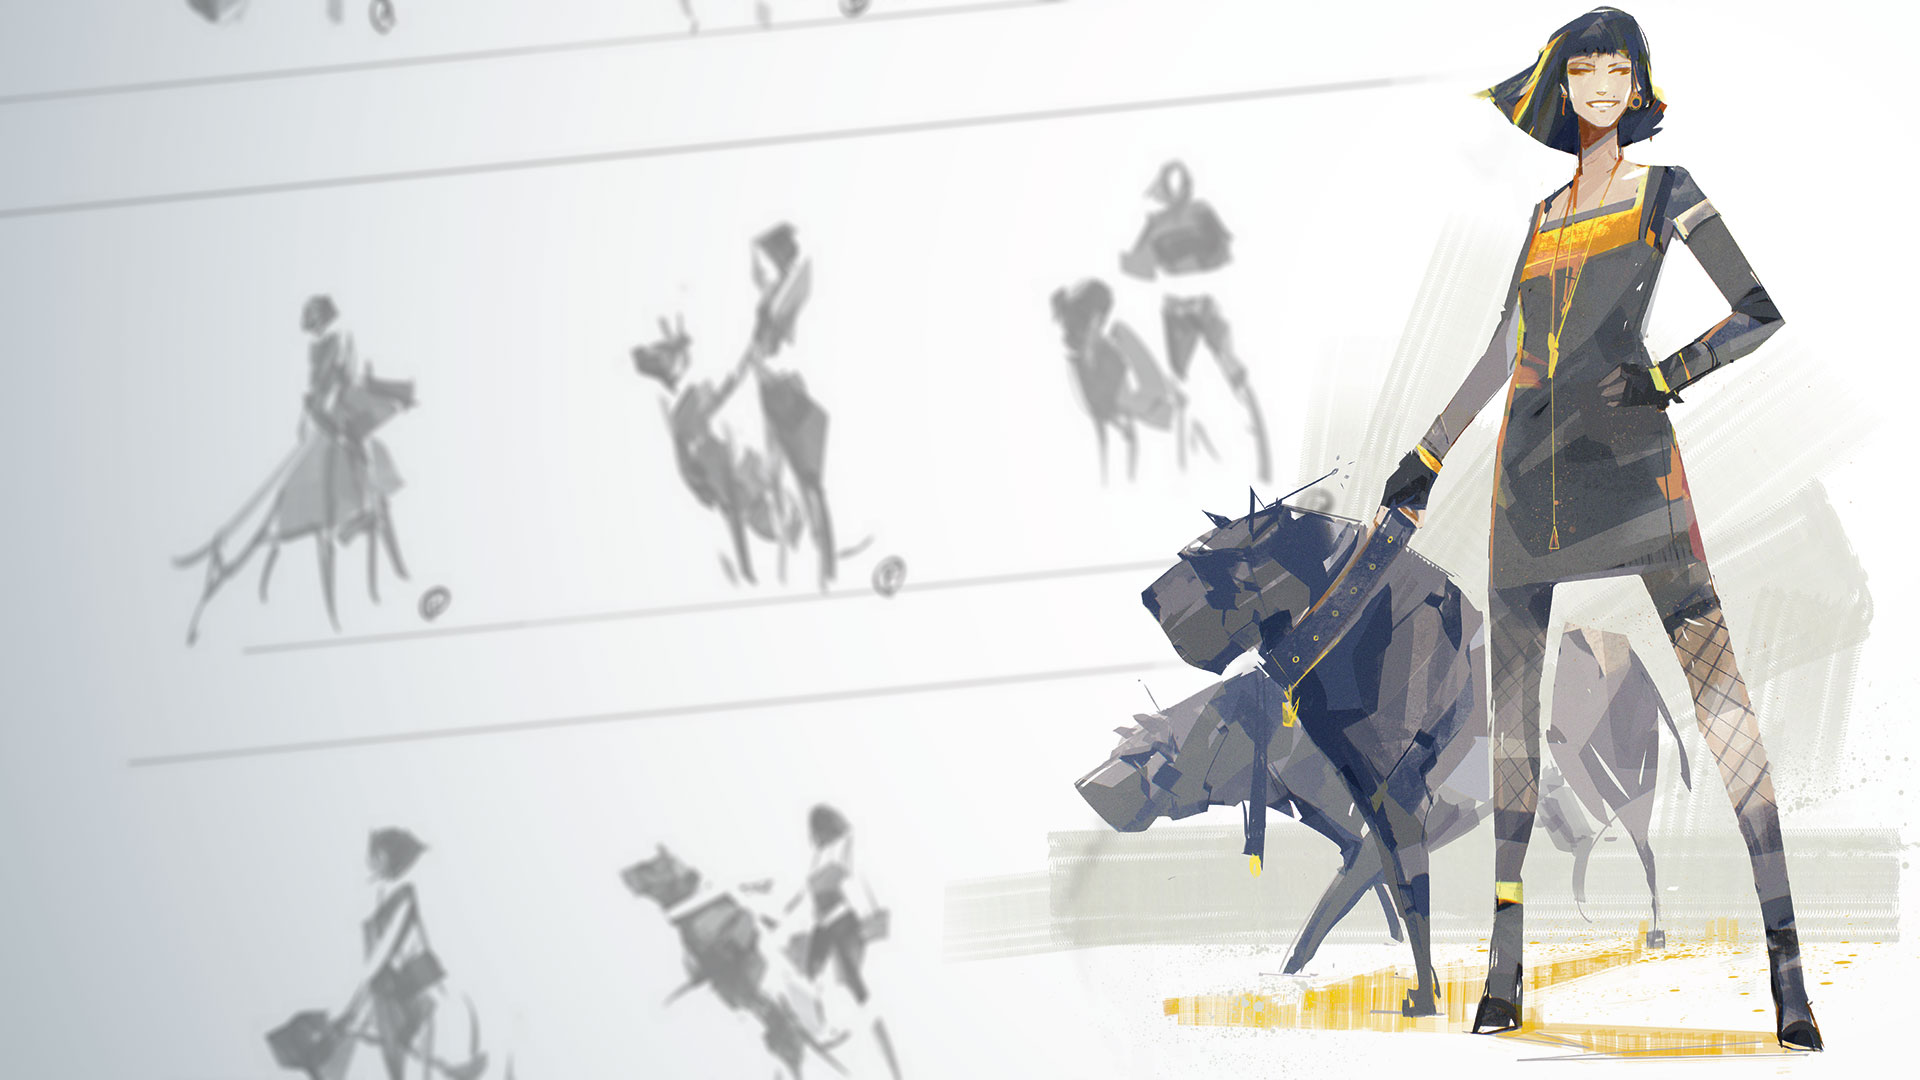 Improve your concept art skills in Photoshop | Creative Bloq